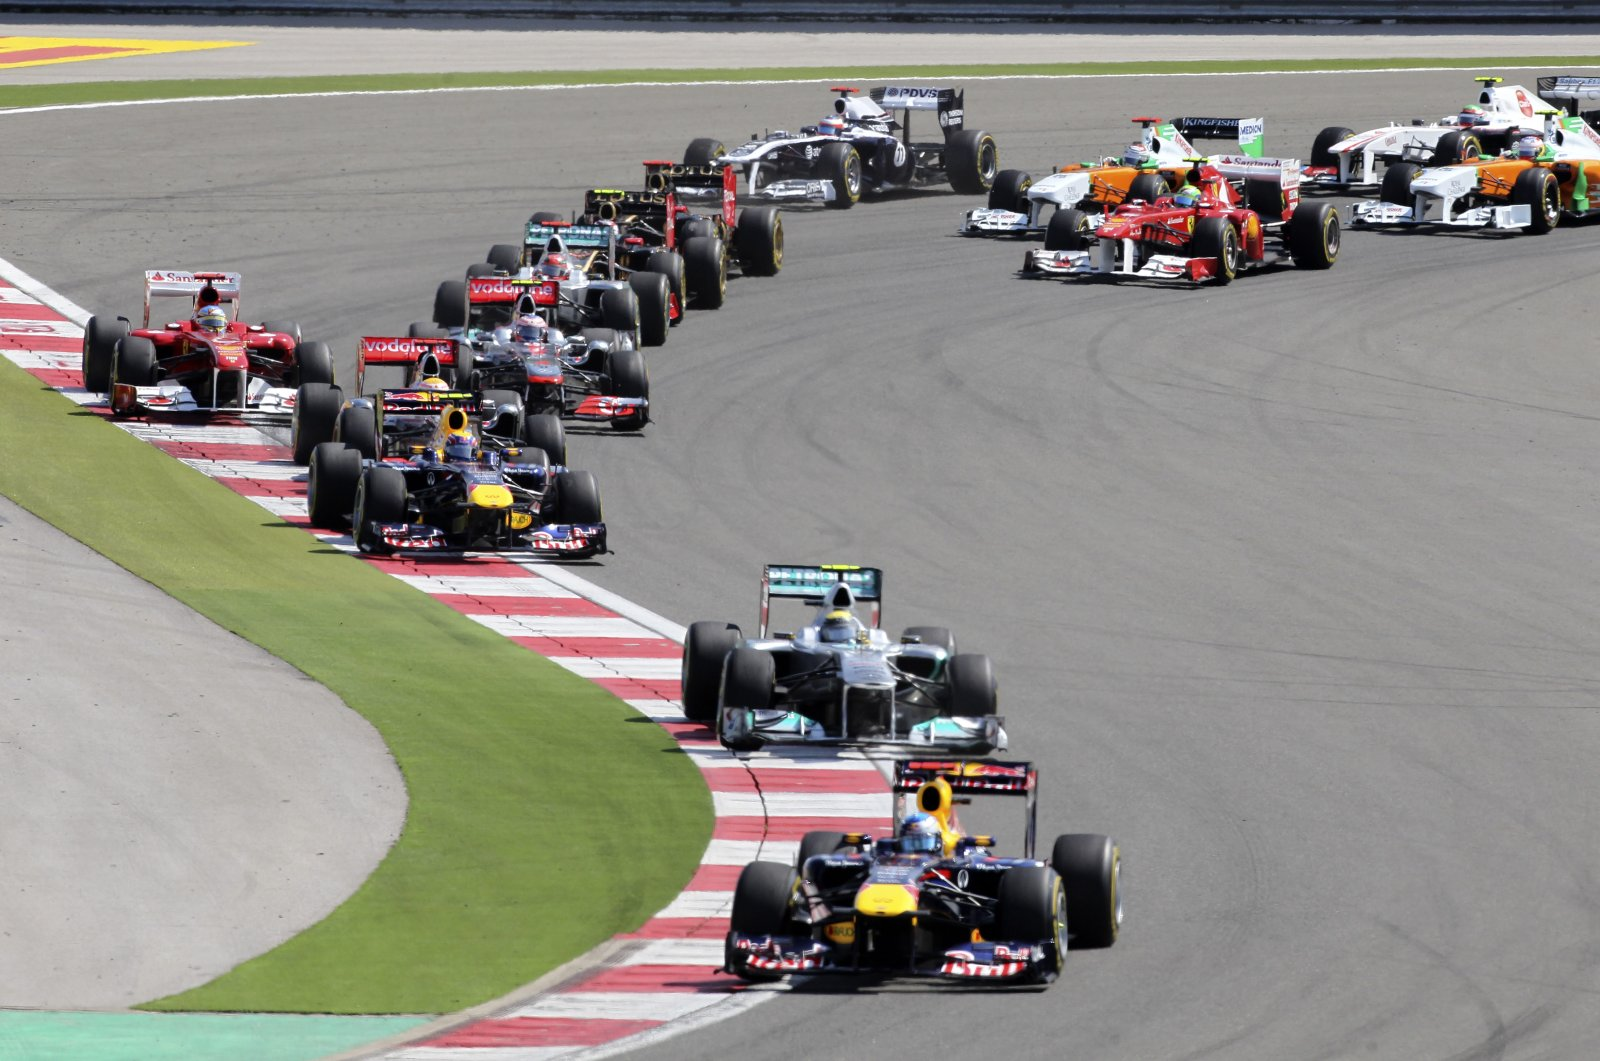 Red Bull driver Sebastian Vettel leads the field after the start of the Formula One race at the Istanbul Park circuit racetrack in Istanbul, Turkey, May 8, 2011. (AP Photo)